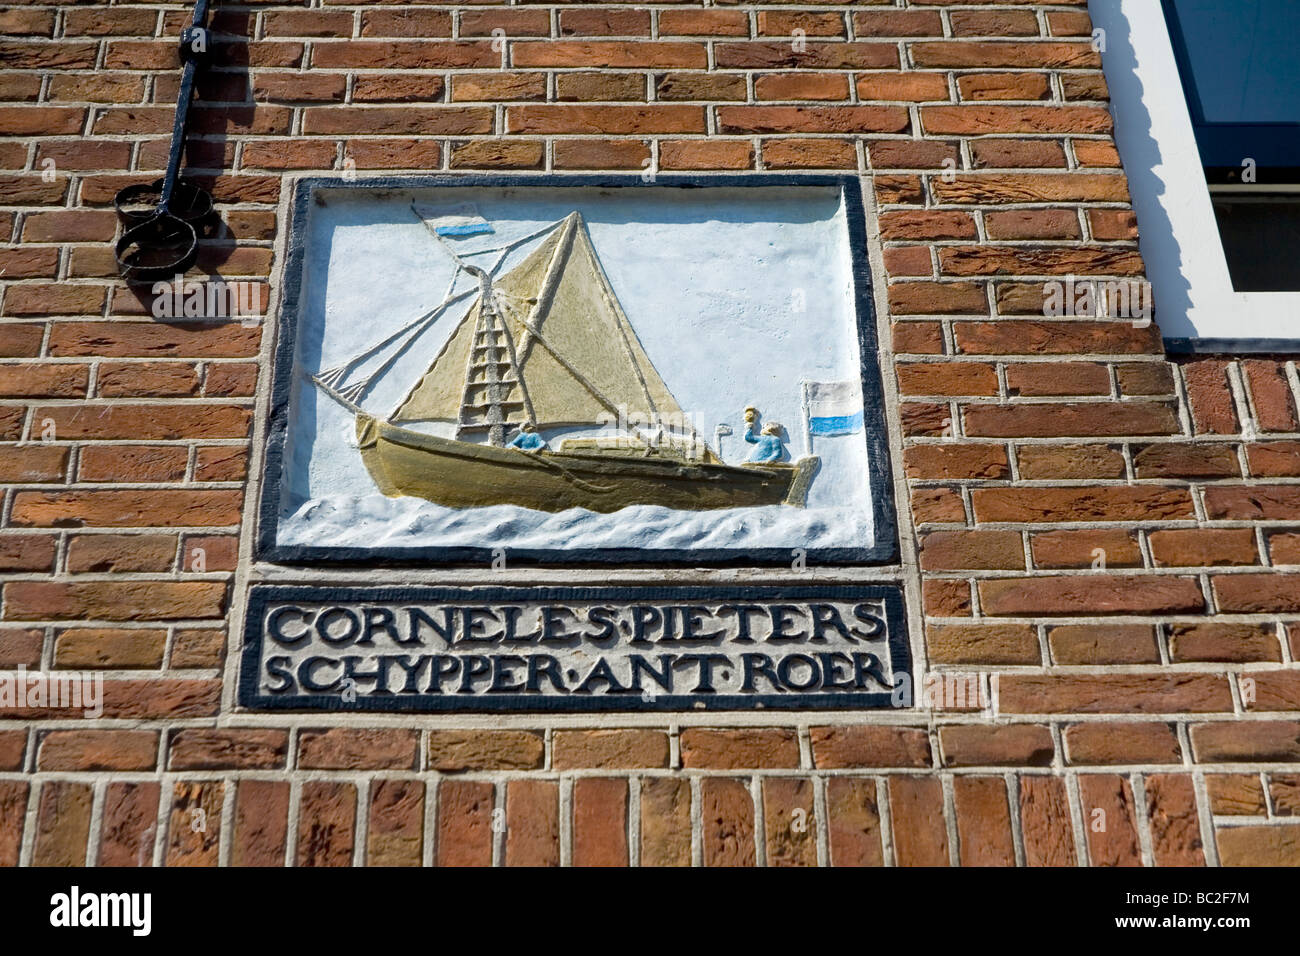 yachtsman trade signal in a wall house. Monnikendam , Netherlands, Europe - Stock Image